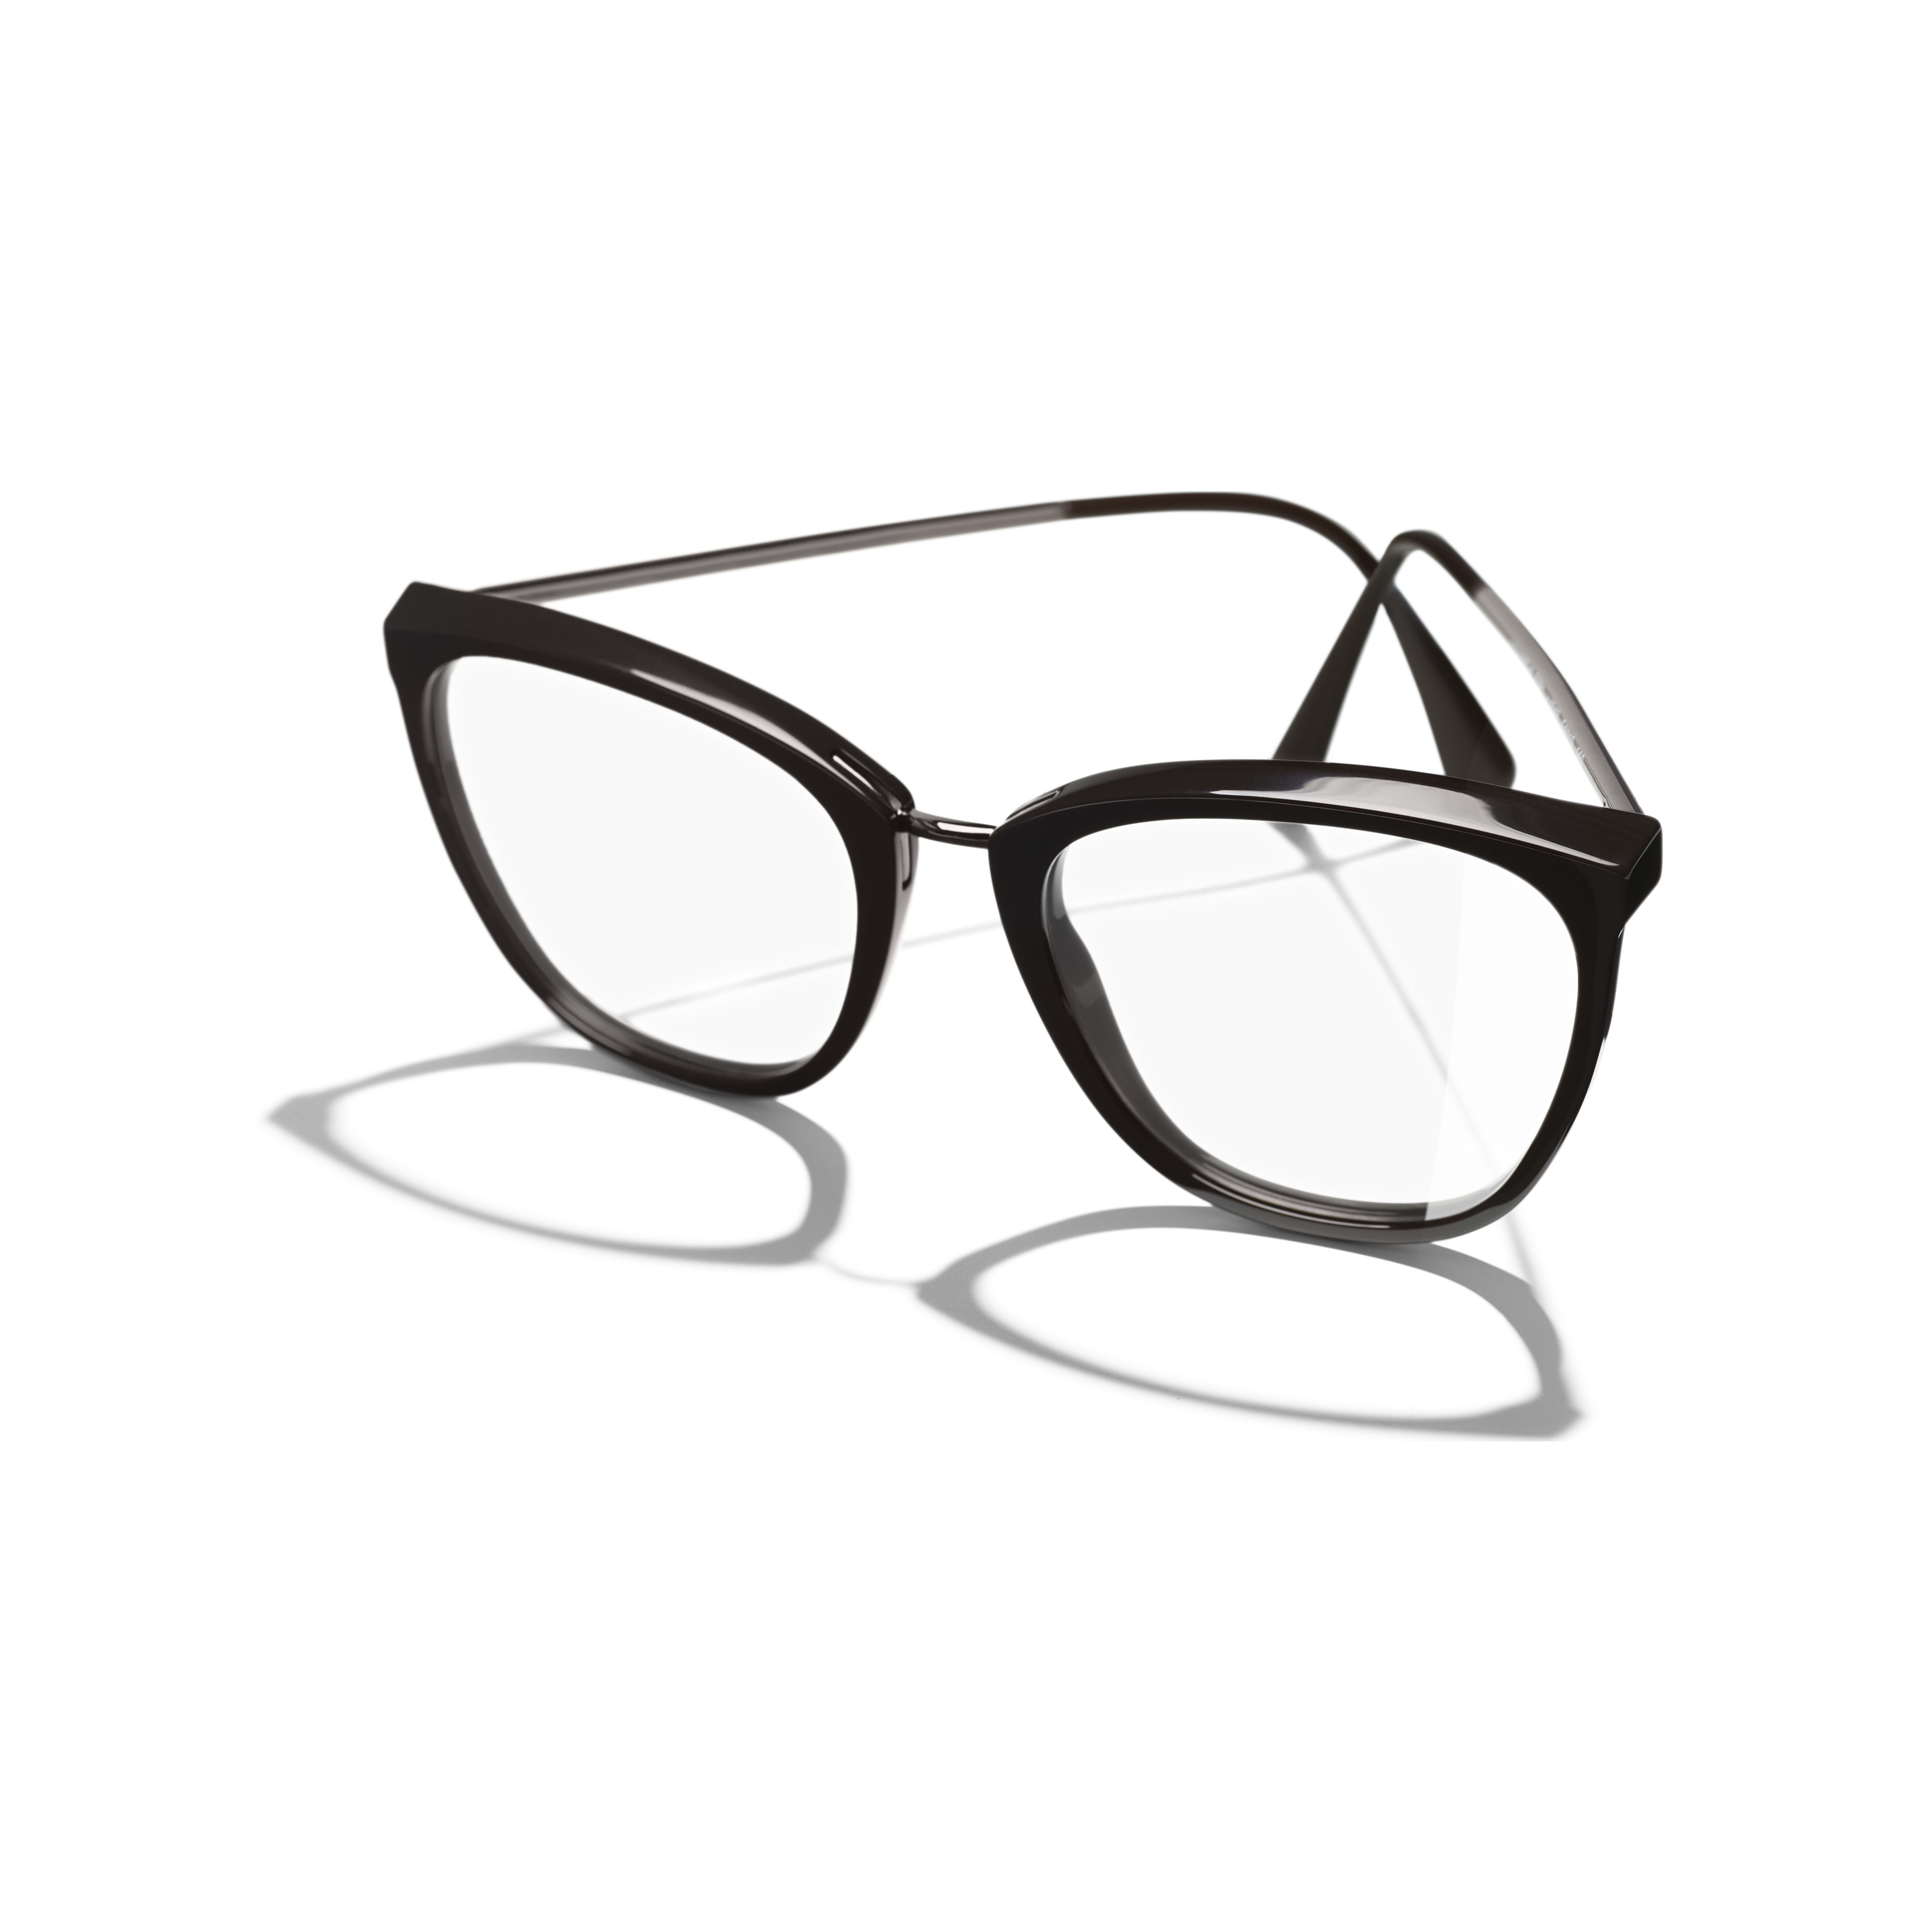 9d2a39f156f2 Butterfly Eyeglasses - Brown - Acetate   Metal - Extra view - see full  sized version ...